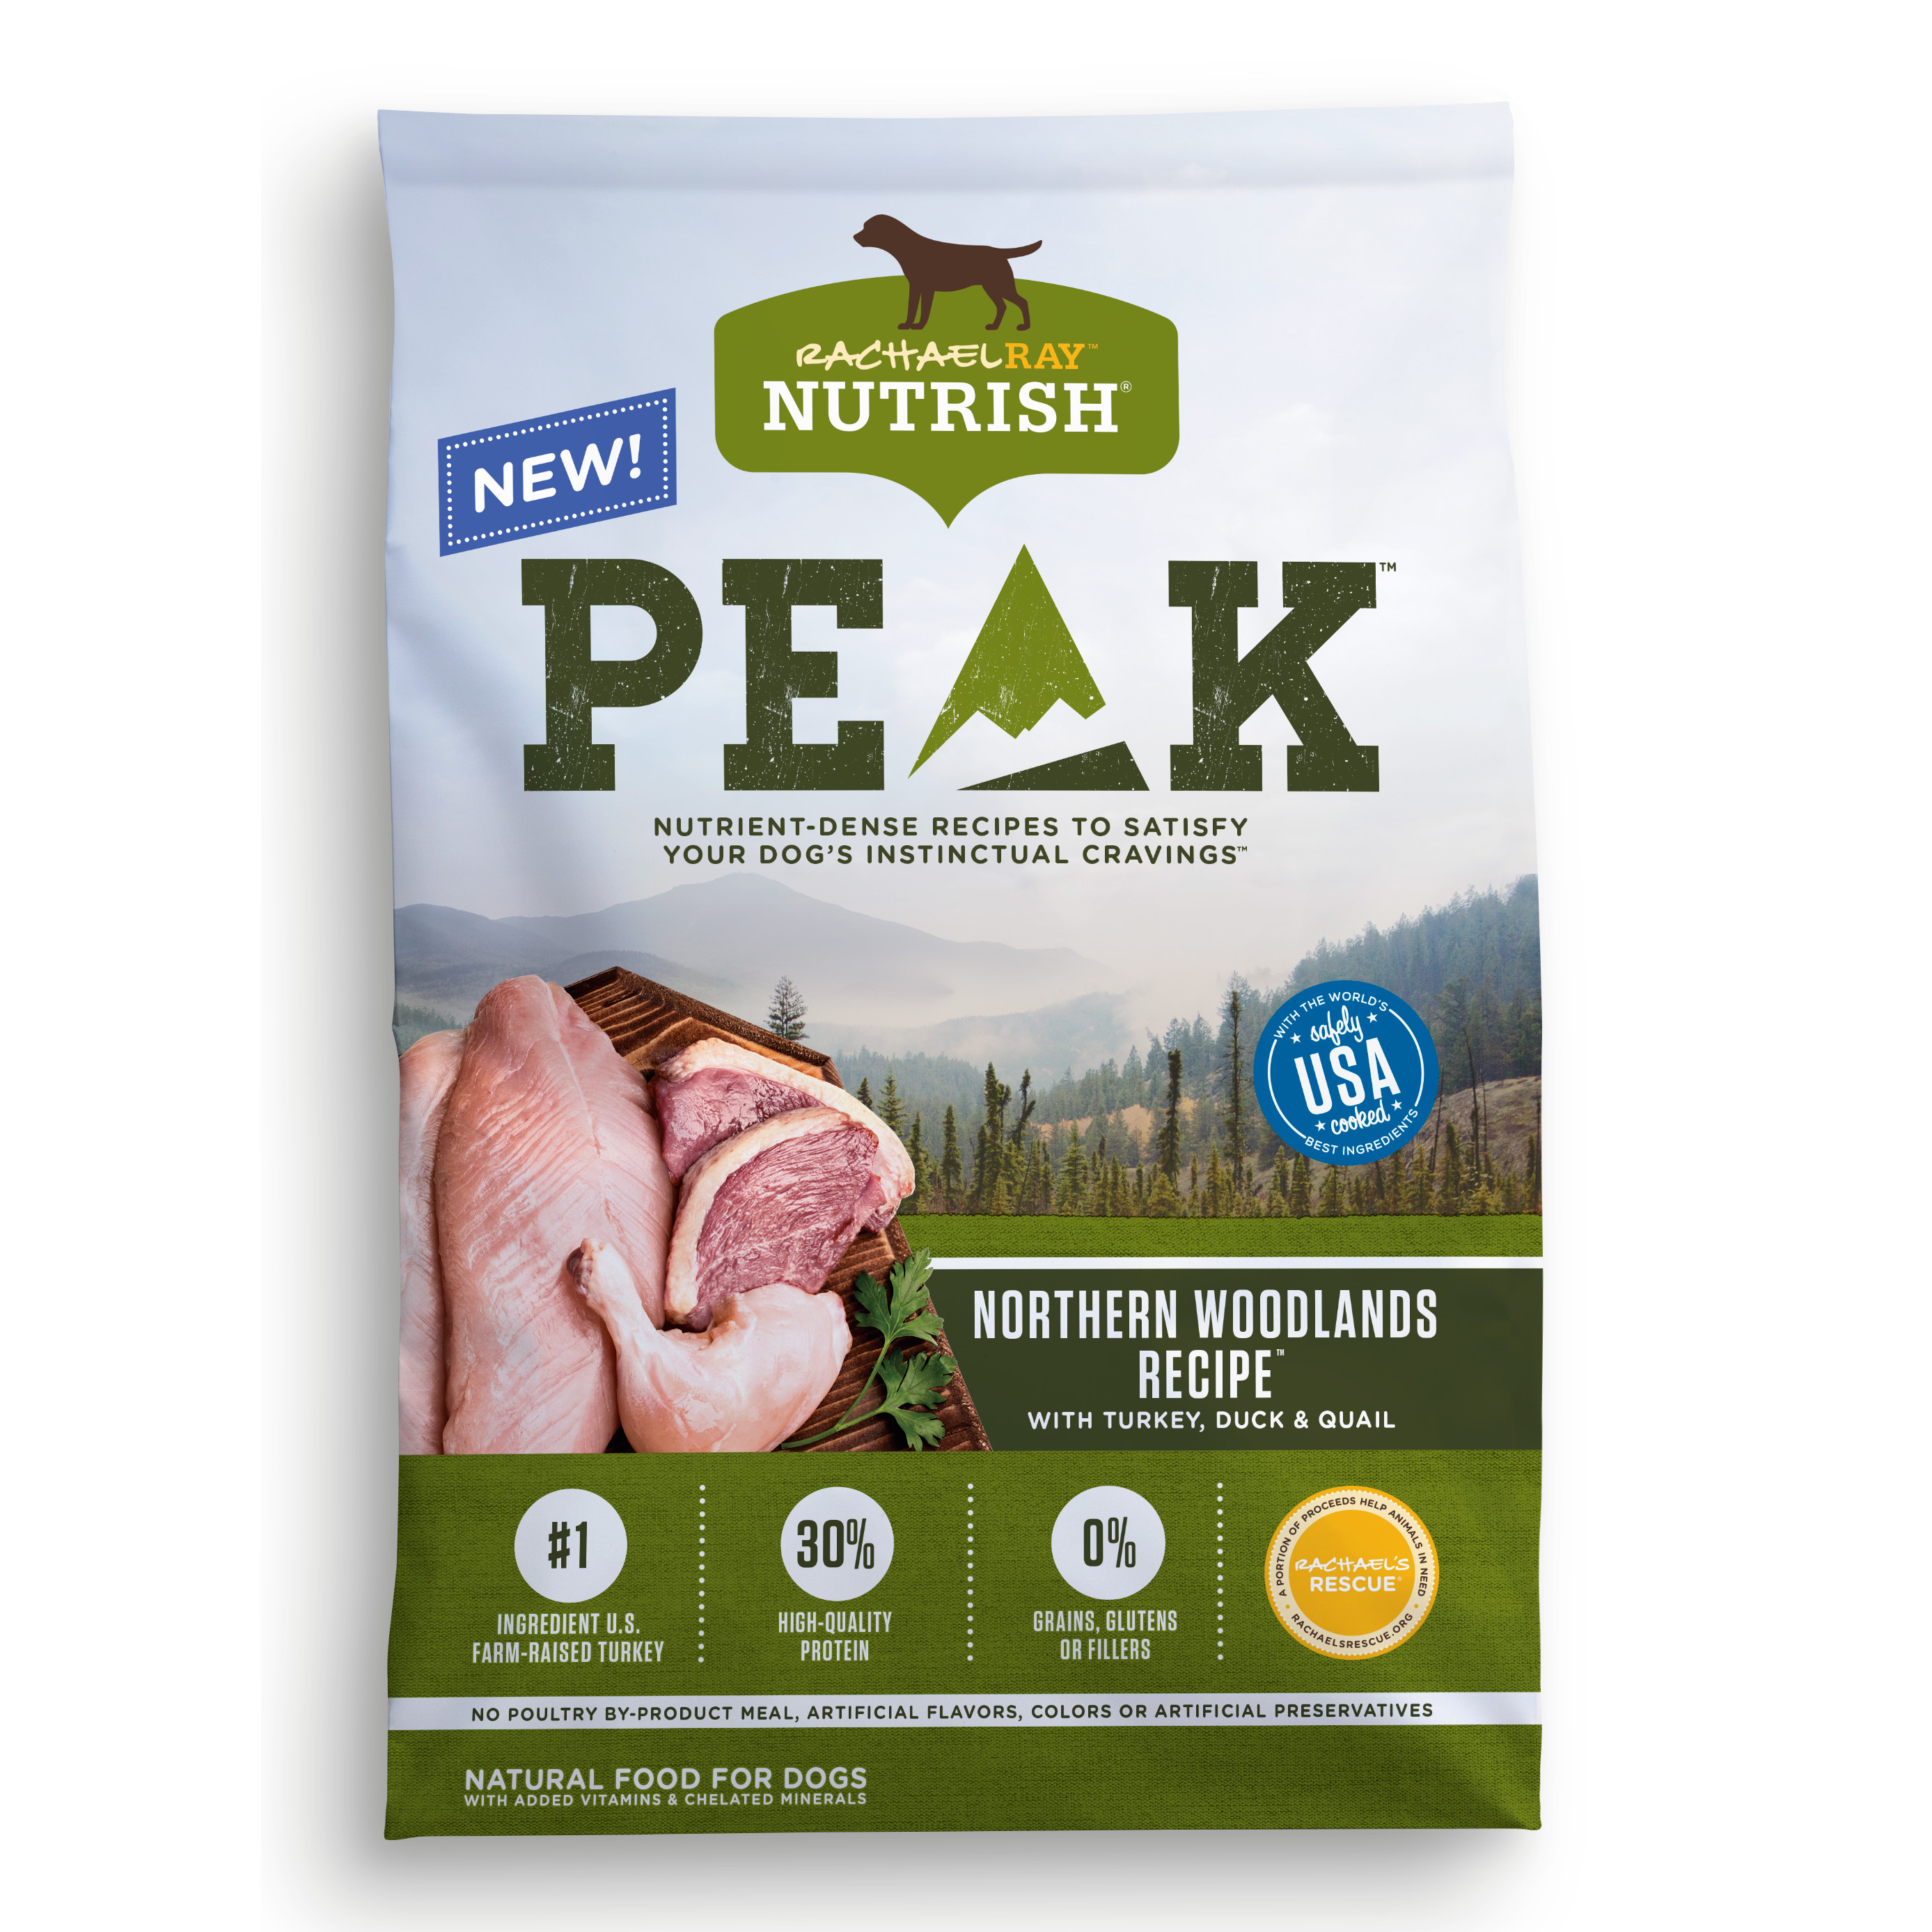 Rachael Ray Nutrish PEAK Natural Dry Dog Food, Grain Free, Northern Woodlands Recipe with Turkey, Duck & Quail, 4 lbs